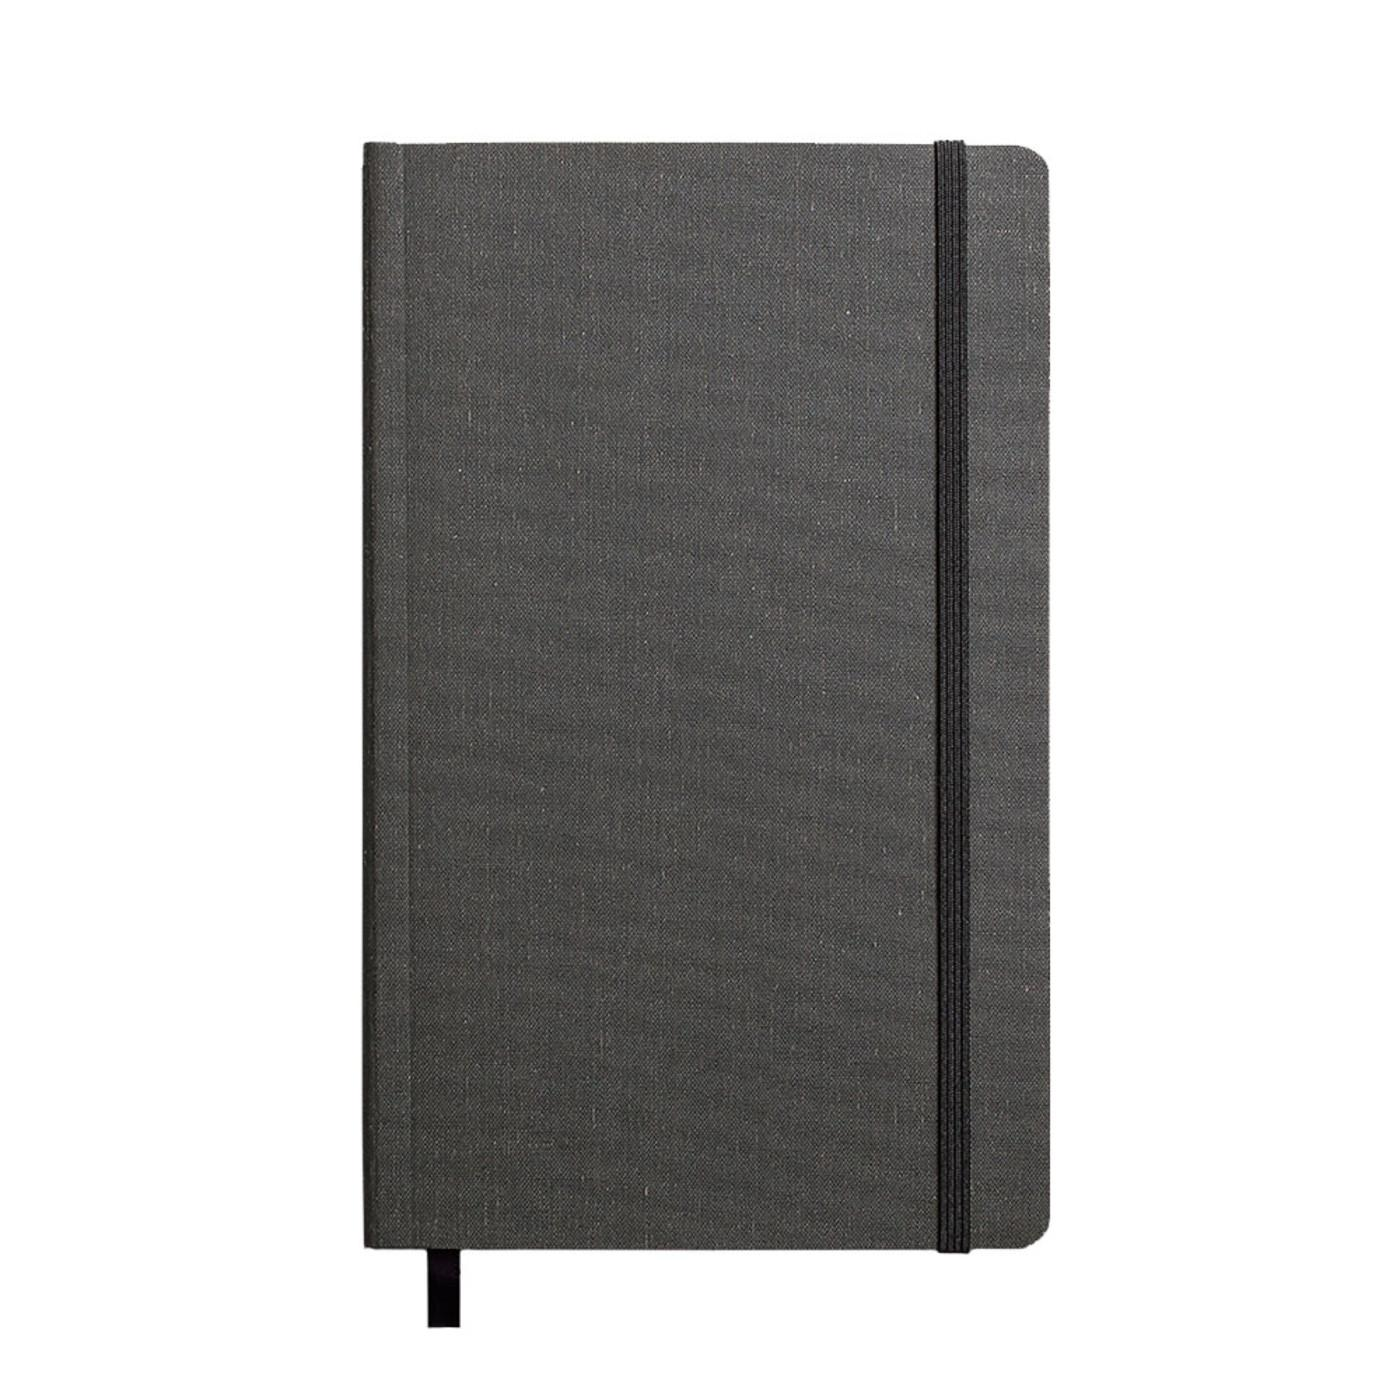 "Shinola Ruled Soft Linen 5.25""x8.25"" Journal Charcoal Gray"